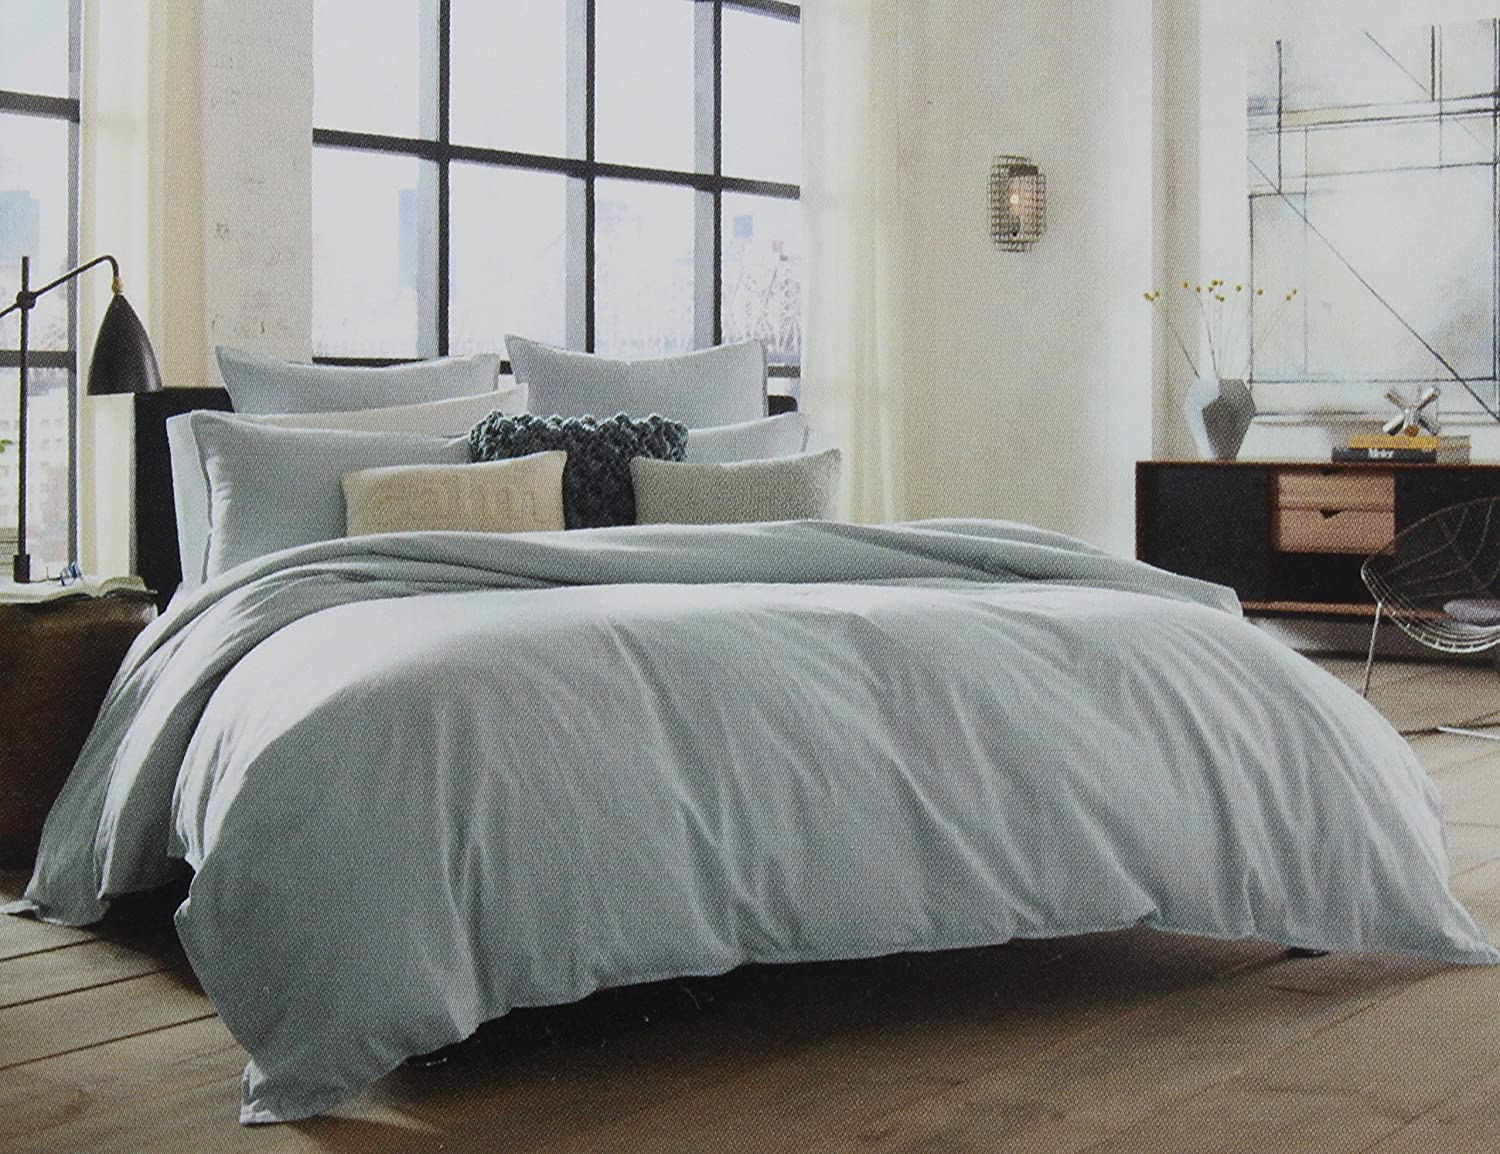 Kenneth Cole Reaction Home Full Queen Size Duvet Cover from the Mineral Bedding Collection in a Stoney Blue Color RN 100350